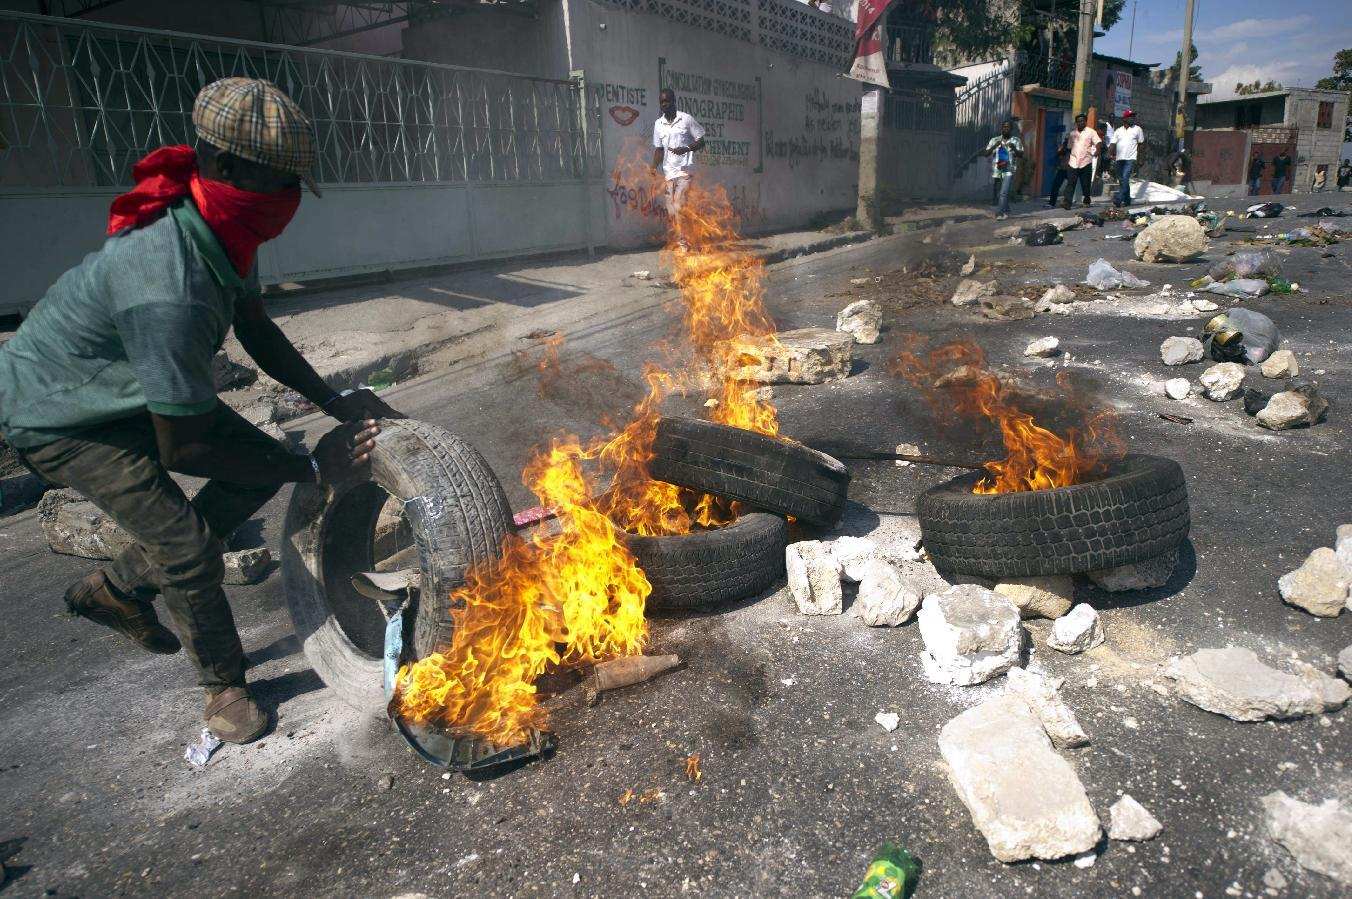 Protesters calling for the resignation of President Michel Martelly and Prime Minister Laurent Lamothe block a street with burning tires and barricades in the center of Port-au-Prince, on December 13, 2014 (AFP Photo/Hector Retamal)